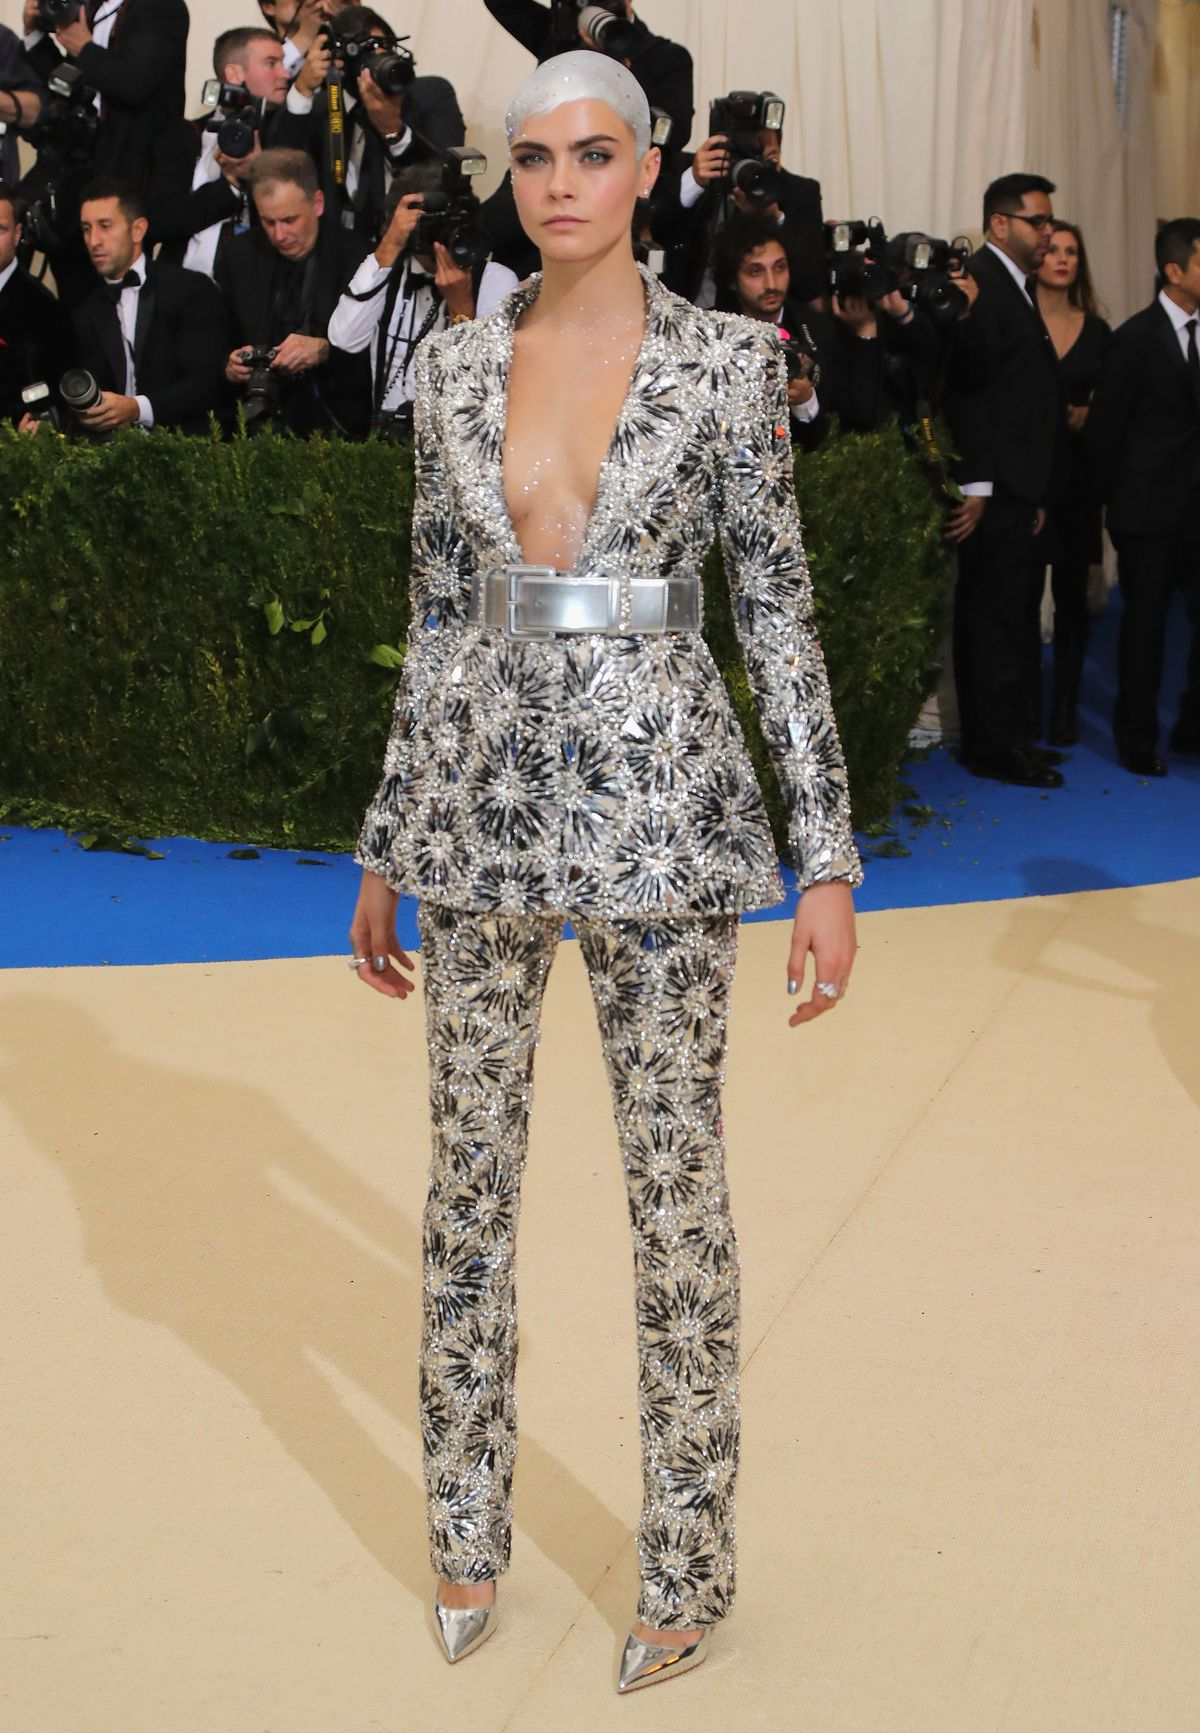 Cara Delevingne attends the 'Rei Kawakubo/Comme des Garcons: Art Of The In-Between' Costume Institute Gala at Metropolitan Museum of Art on May 1, 2017 in New York City.